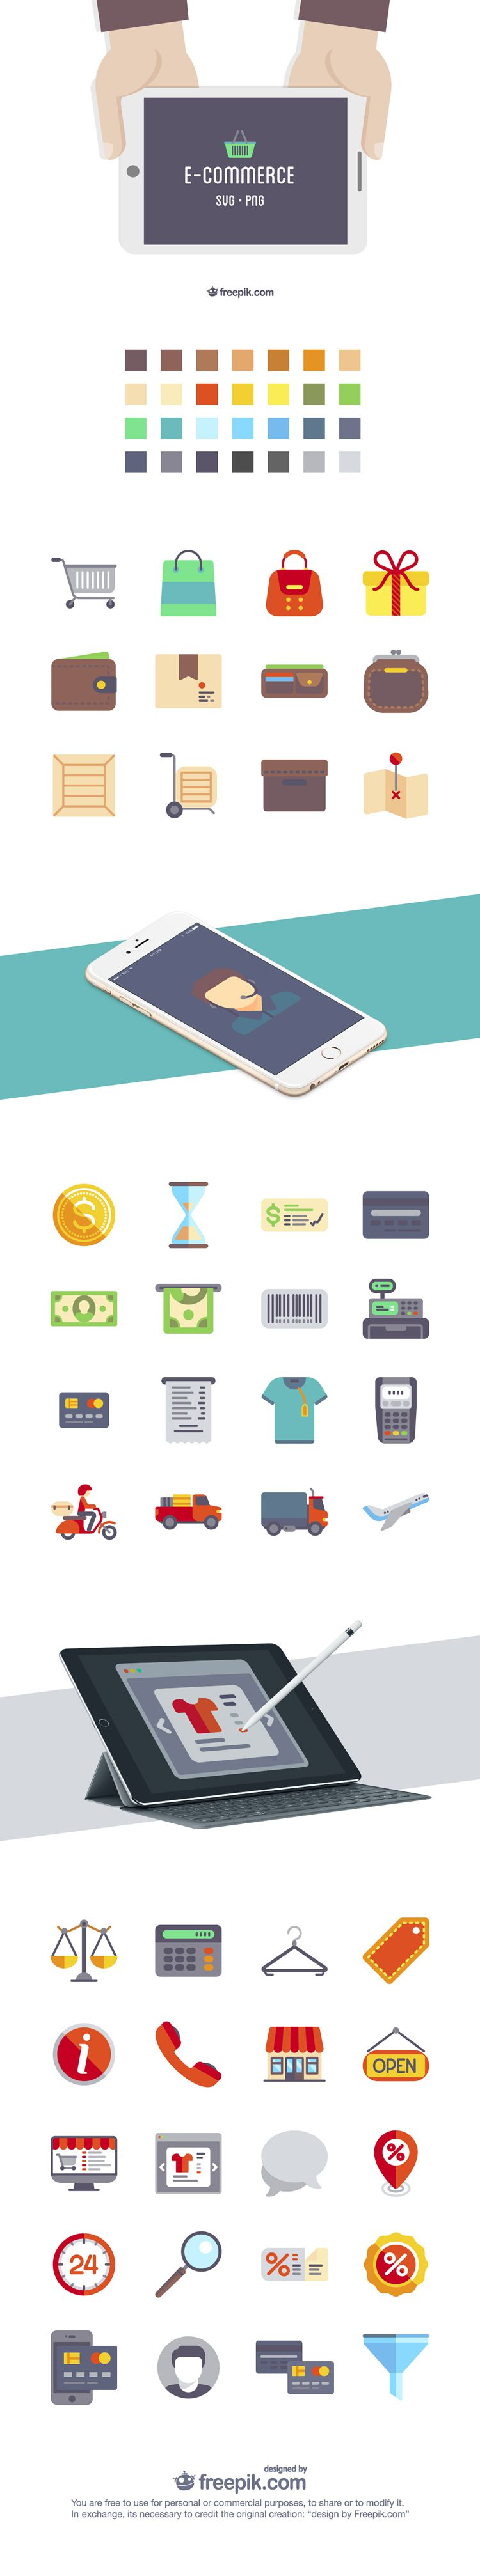 The Free Flat eCommerce Icon Set (50 Icons, PNG & SVG)